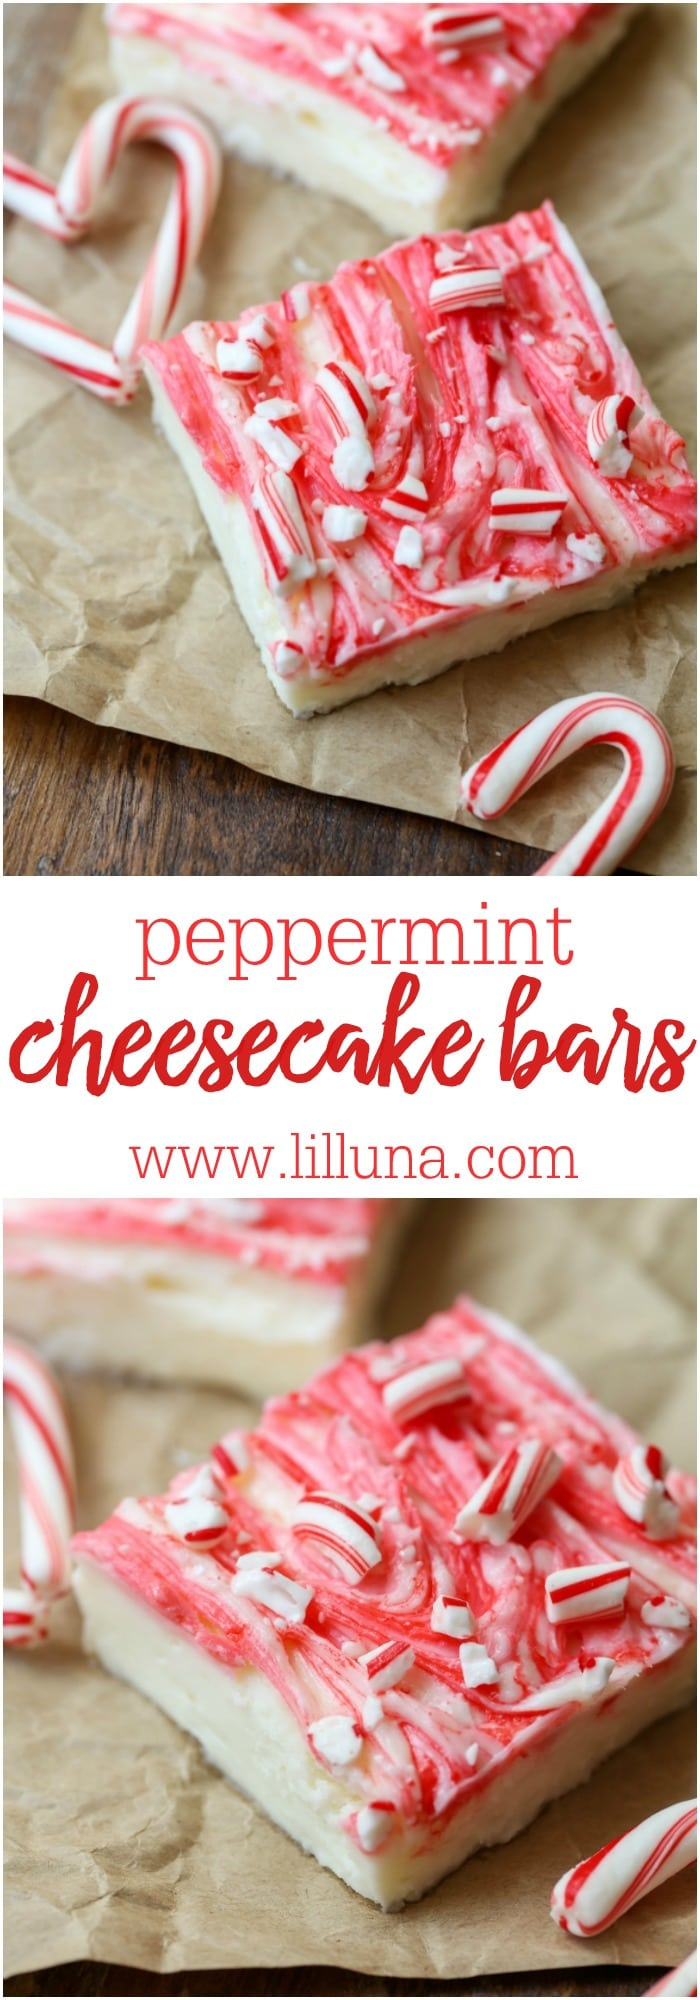 Creamy Peppermint Cheesecake bars topped with candy cane pieces and perfect for the holidays.